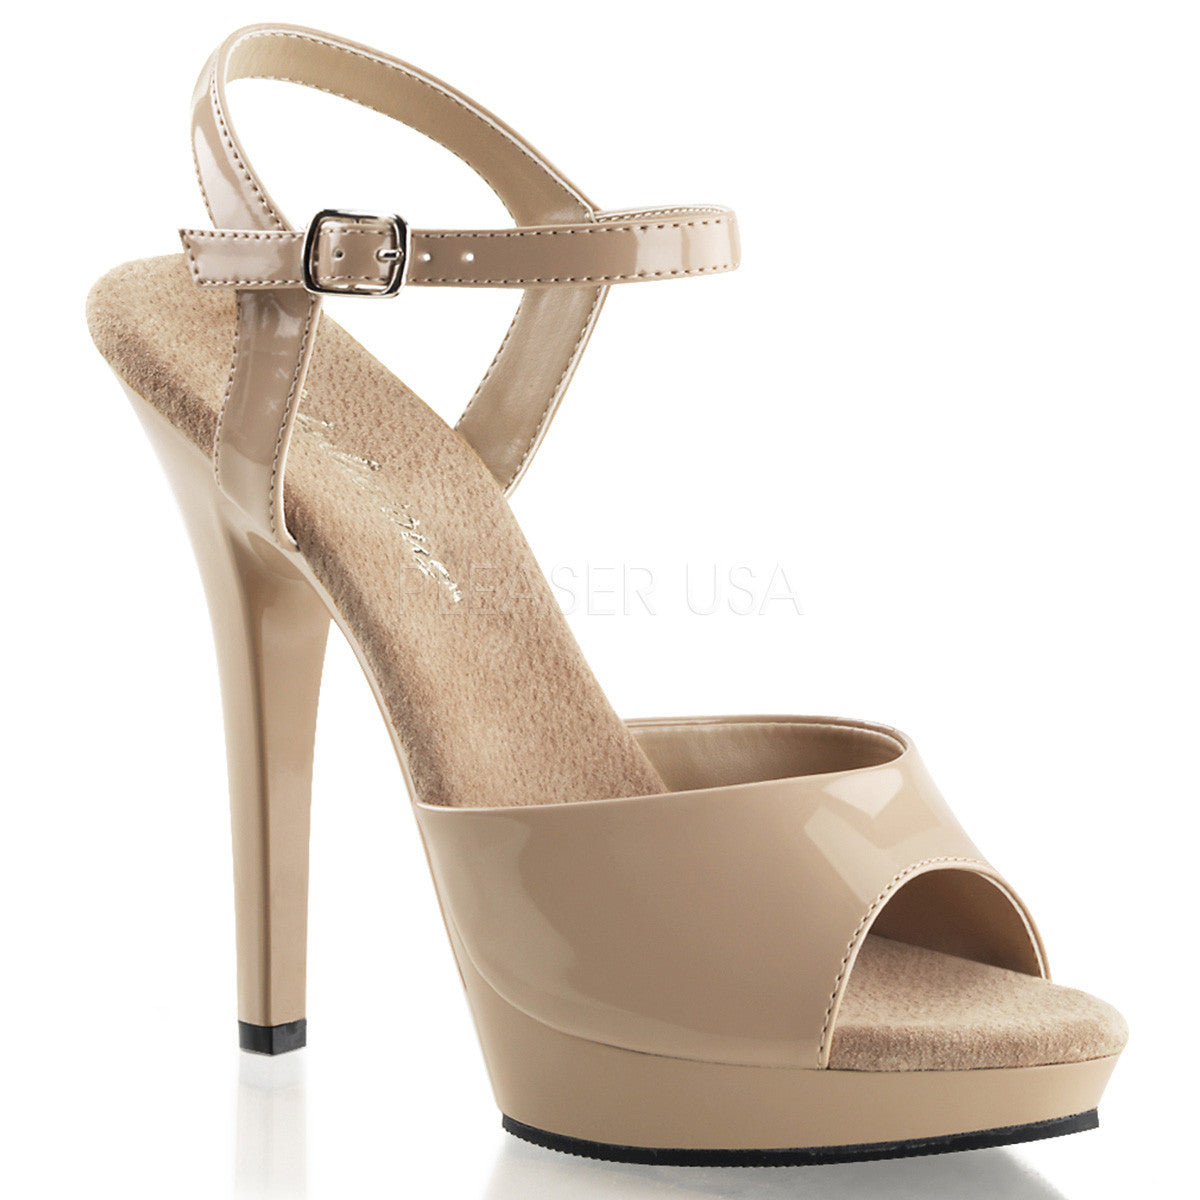 FABULICIOUS LIP-109 Nude-Nude Ankle Strap Sandals - Shoecup.com